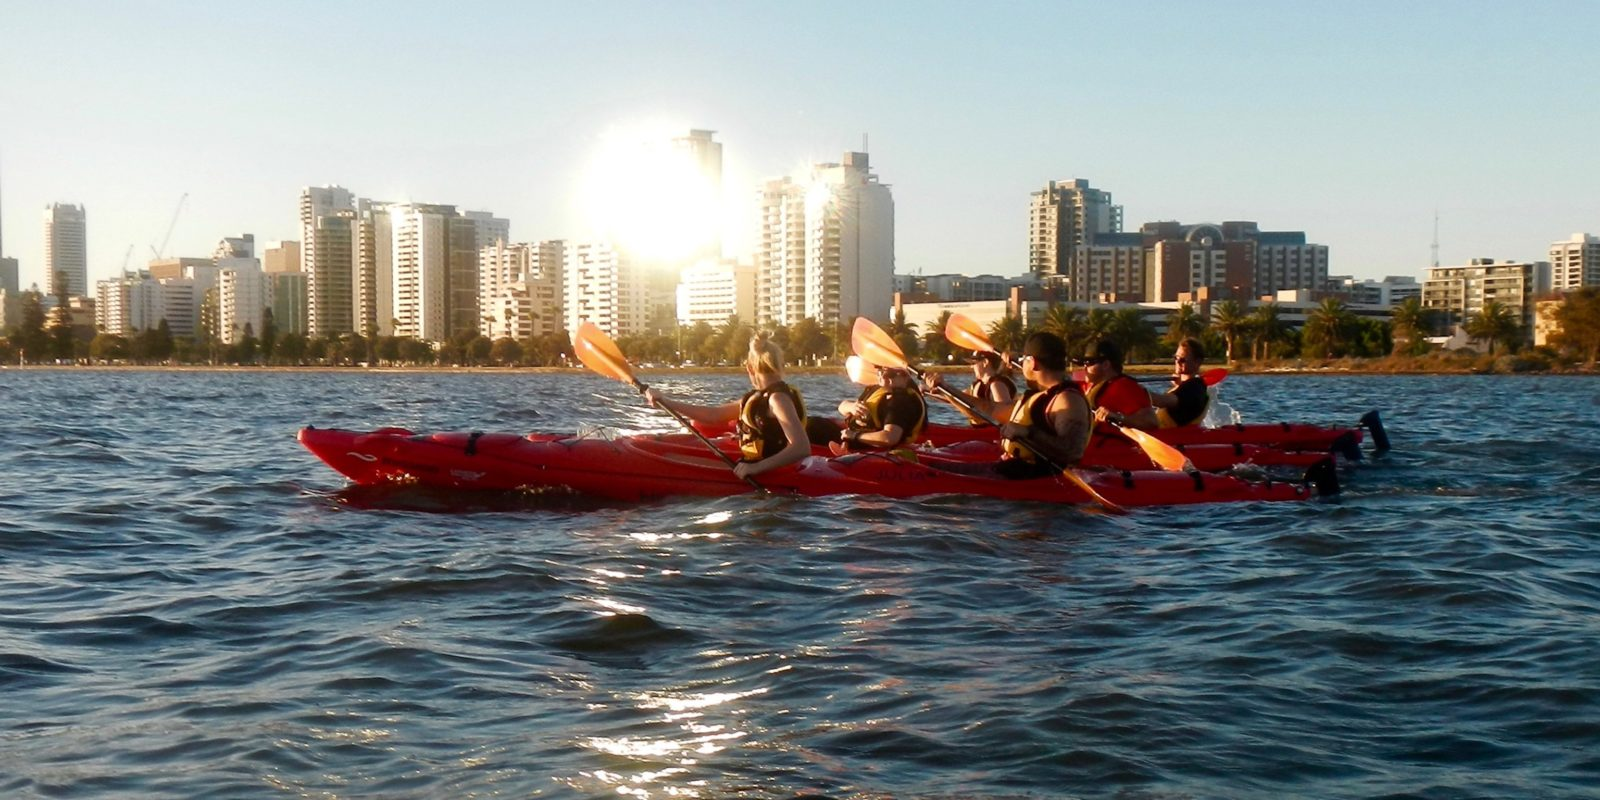 Water Wanderers Kayaking, South Perth, Western Australia